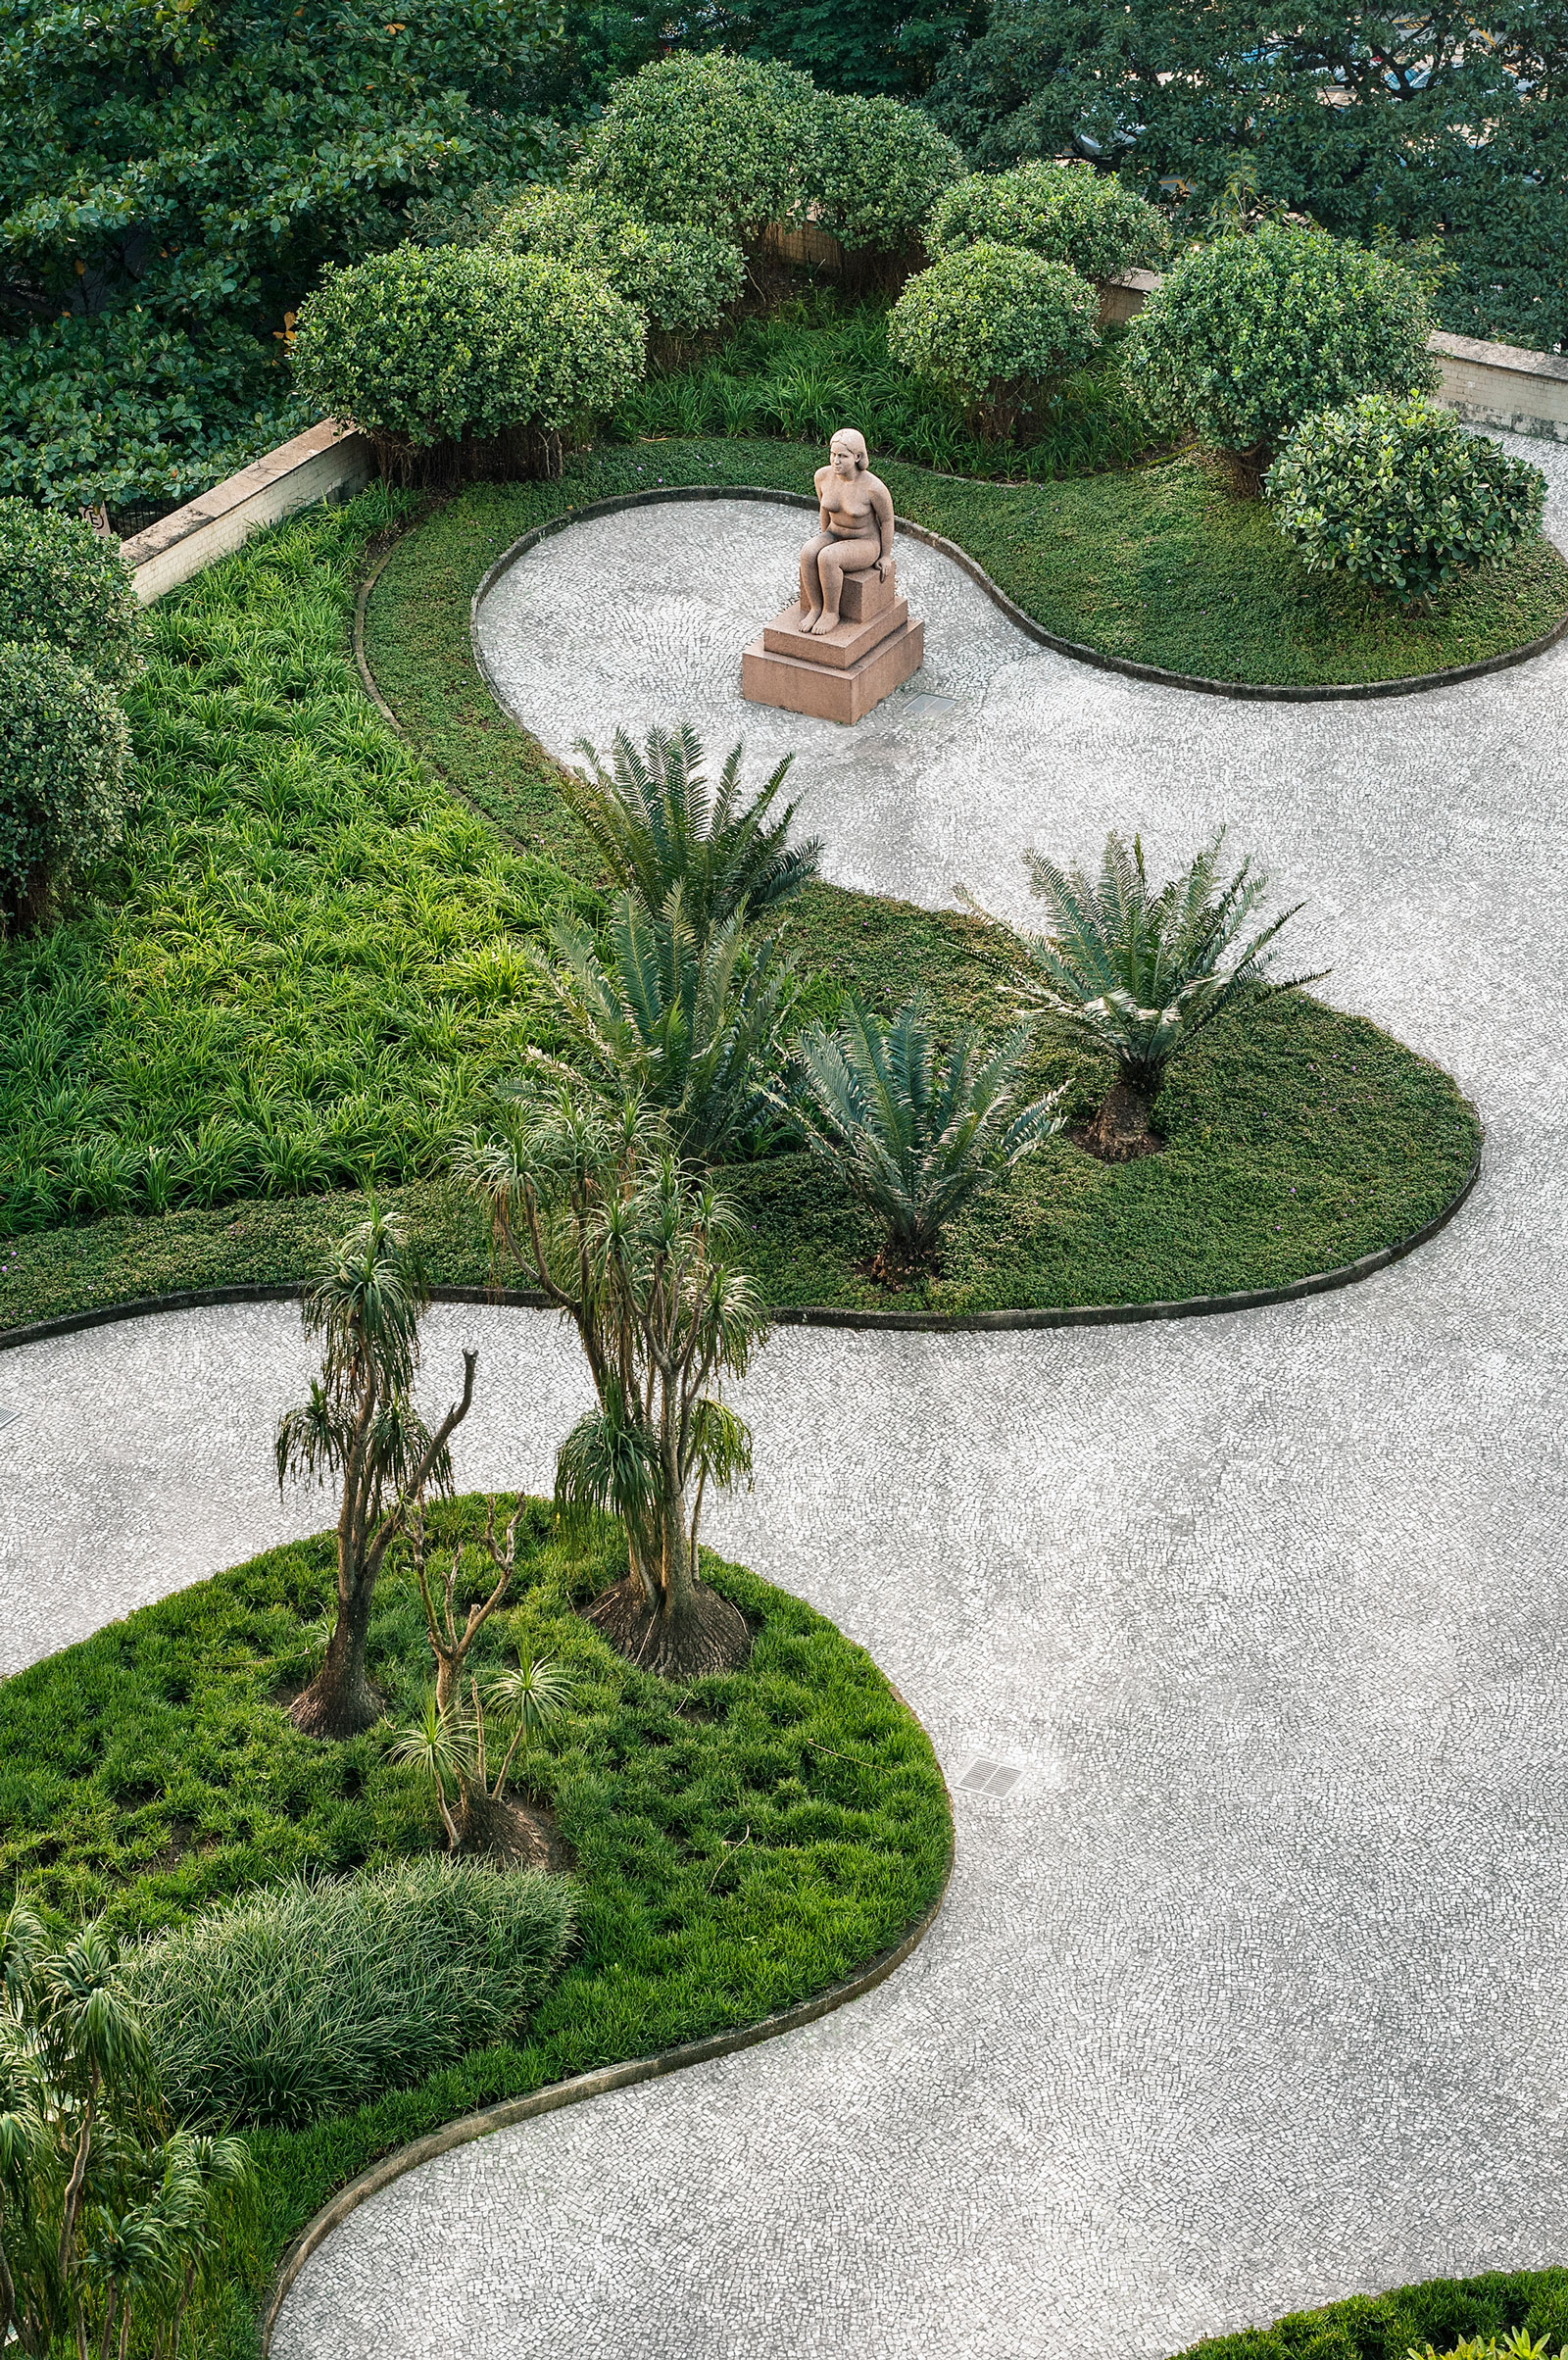 Gardens of the Ministry of Education and Health, designed by Roberto Burle Marx, Rio de Janeiro, Brazil, 1938